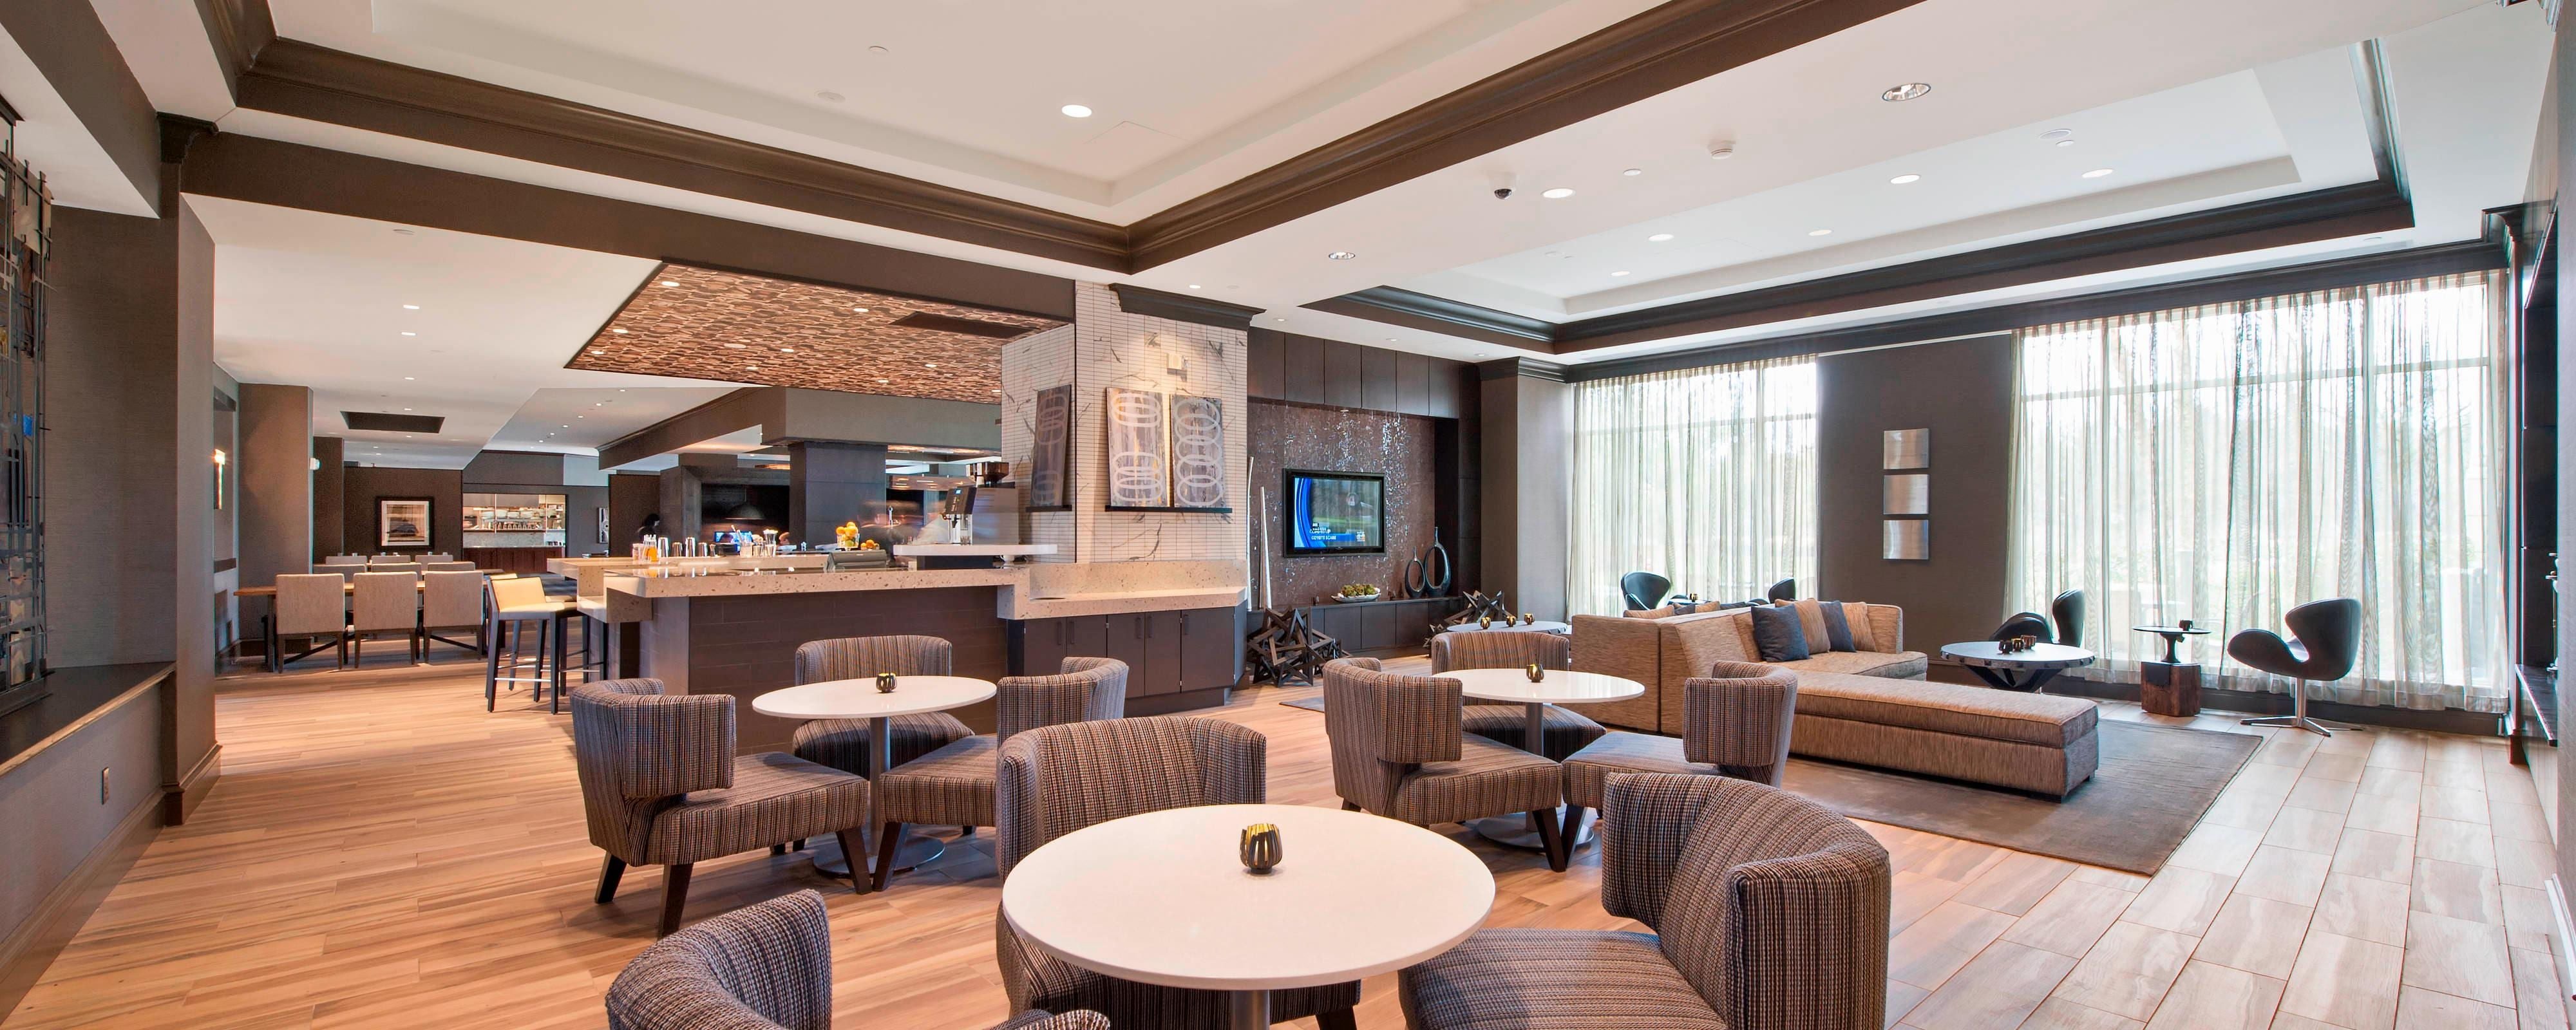 Hotels in Somerset County, NJ | Bridgewater Marriott